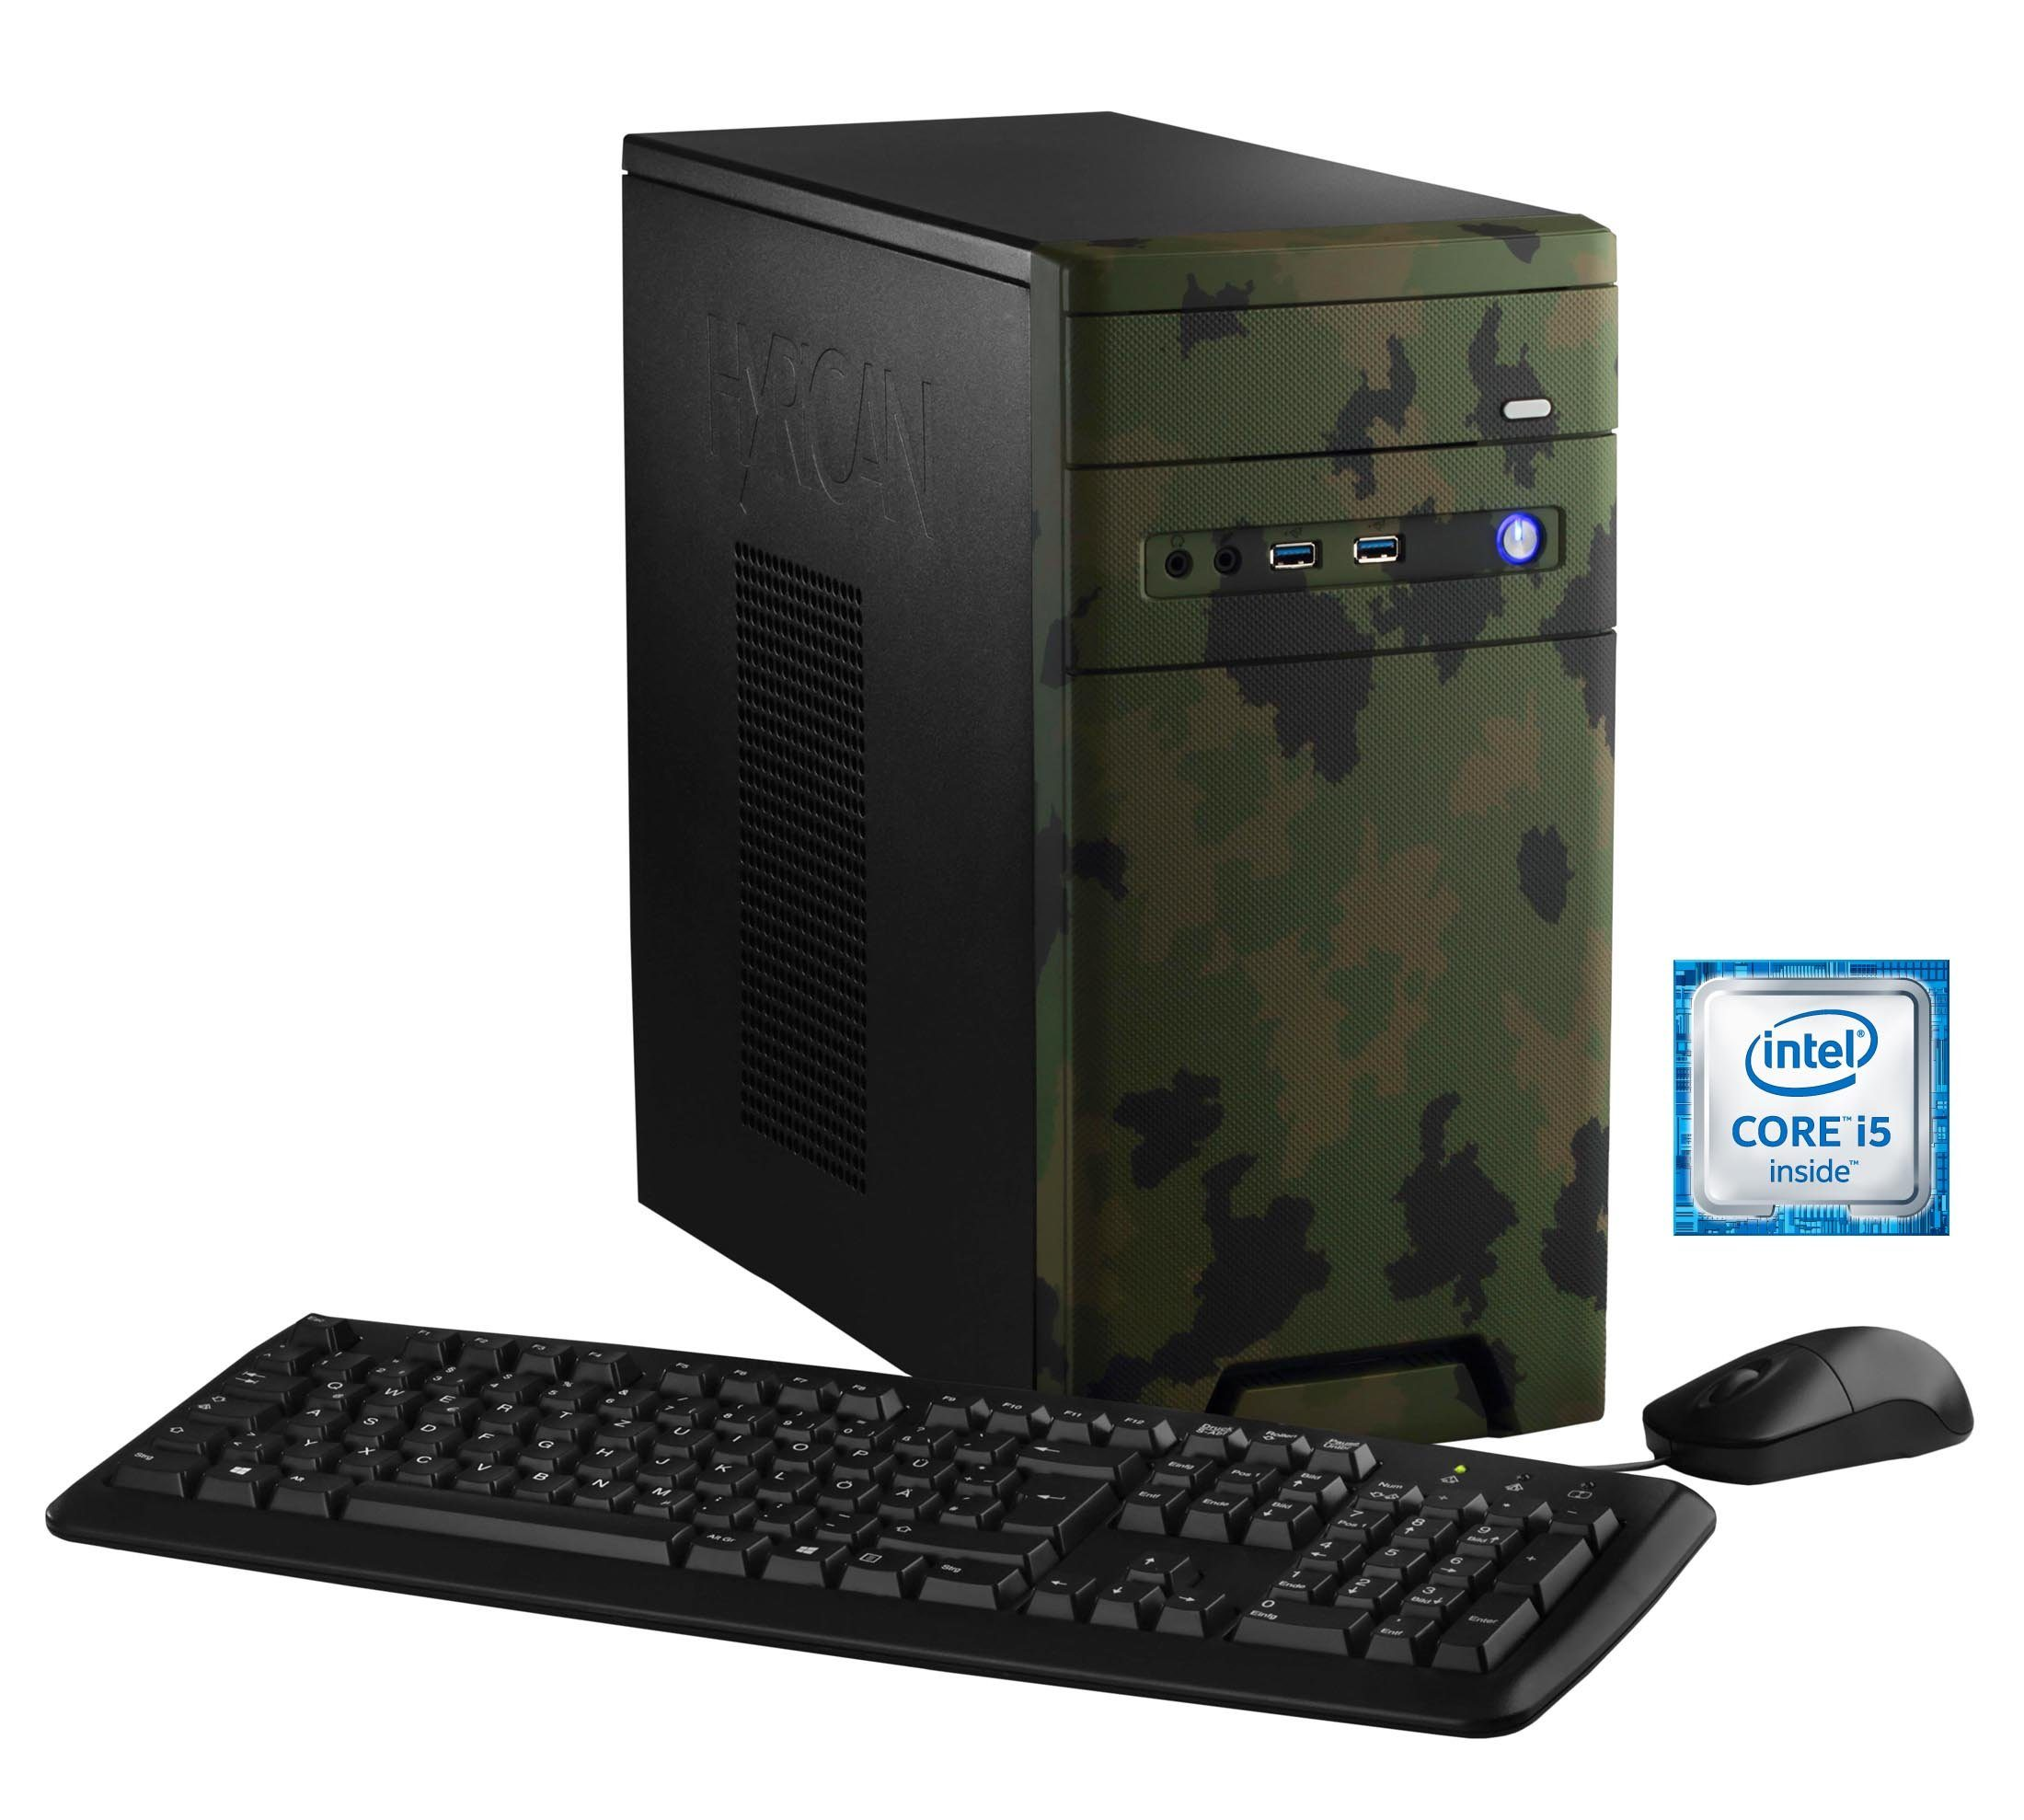 Hyrican Gaming PC Intel® i5-6400, 16GB, SSD + HDD, GeForce® GTX 1050 »CyberGamer forest 5363 «